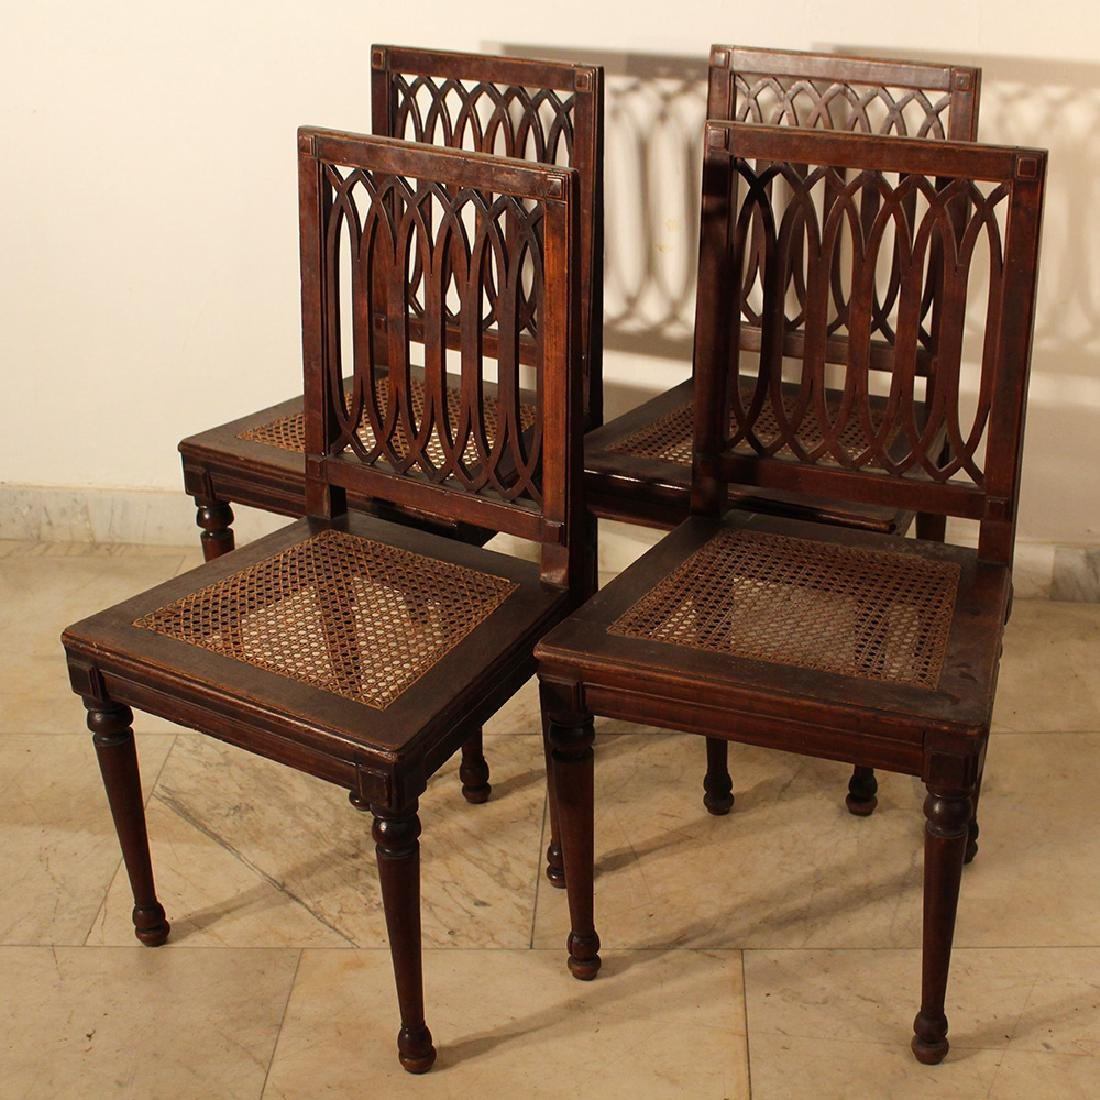 A set of four Louis XVI dining chairs